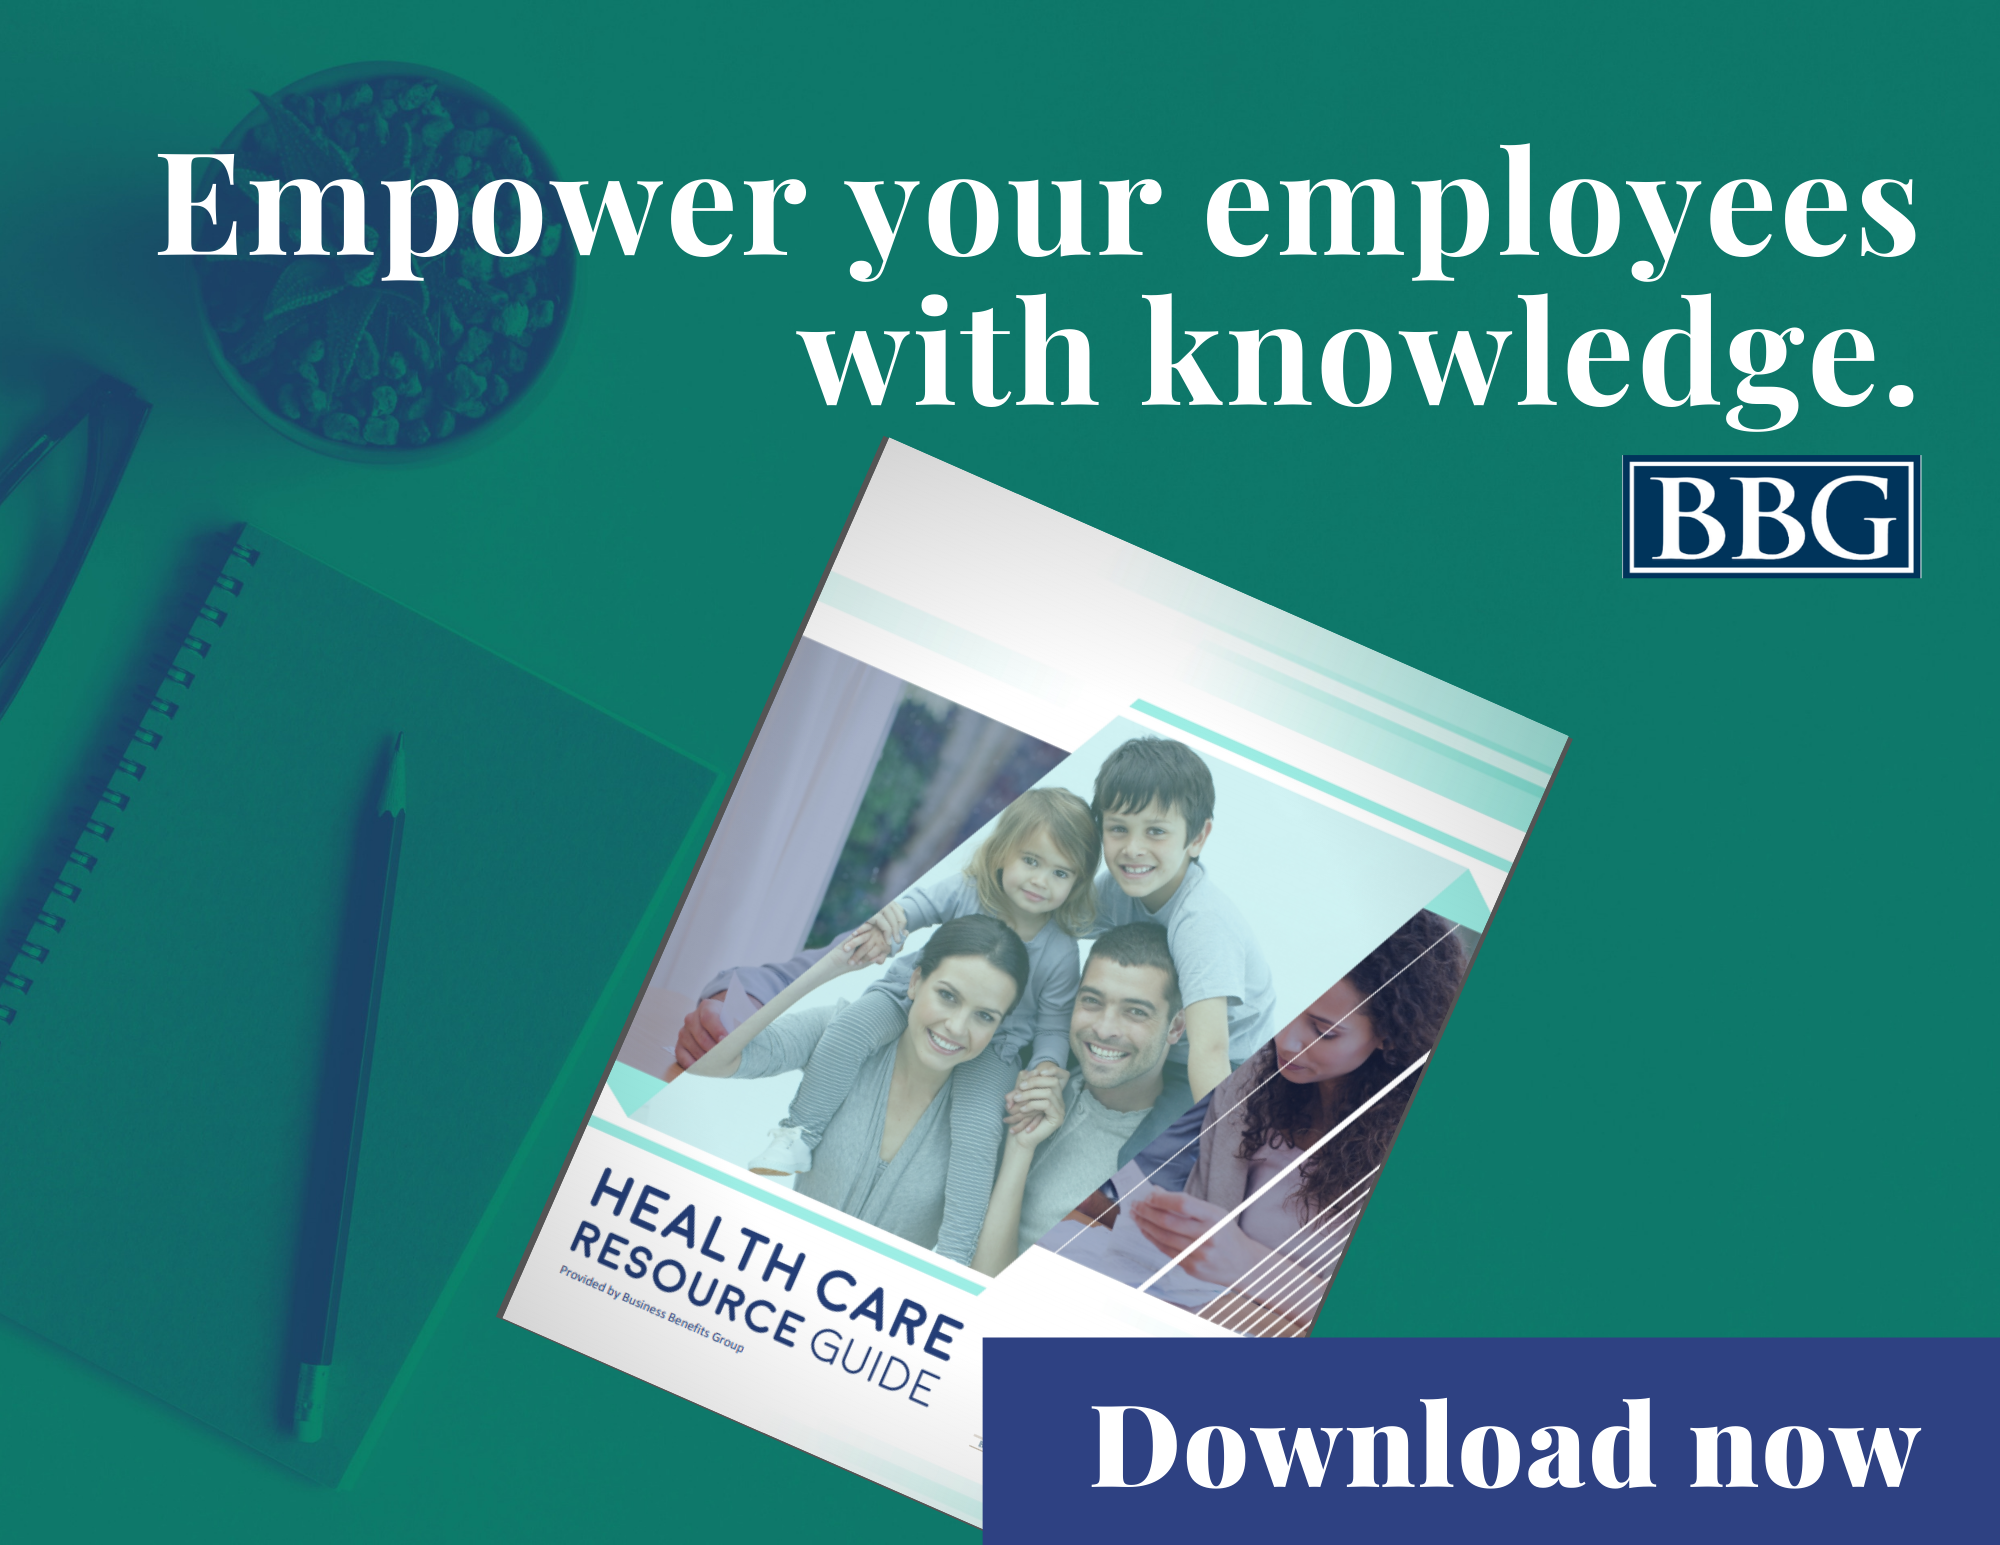 Empower your employees with knowledge